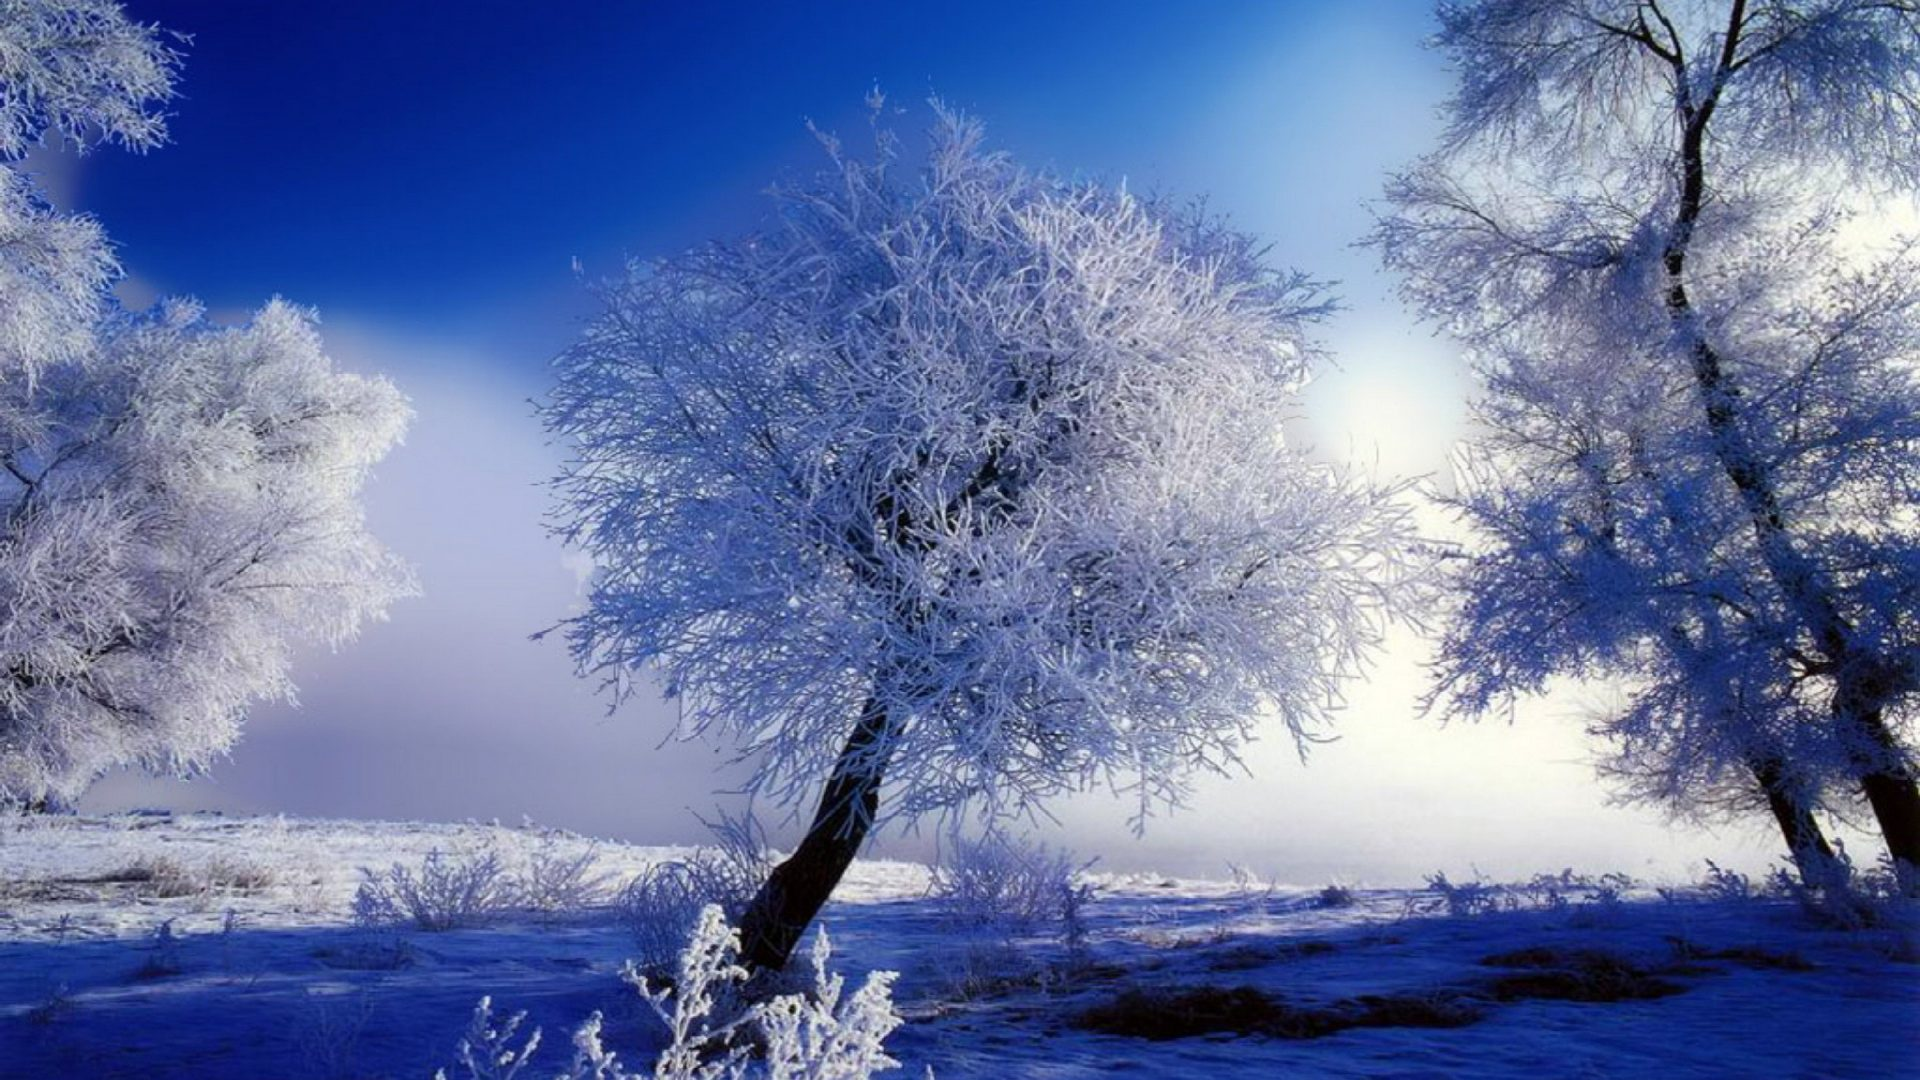 beautiful winter snow hd hd wallpaper HD Wallpapers 1920x1080